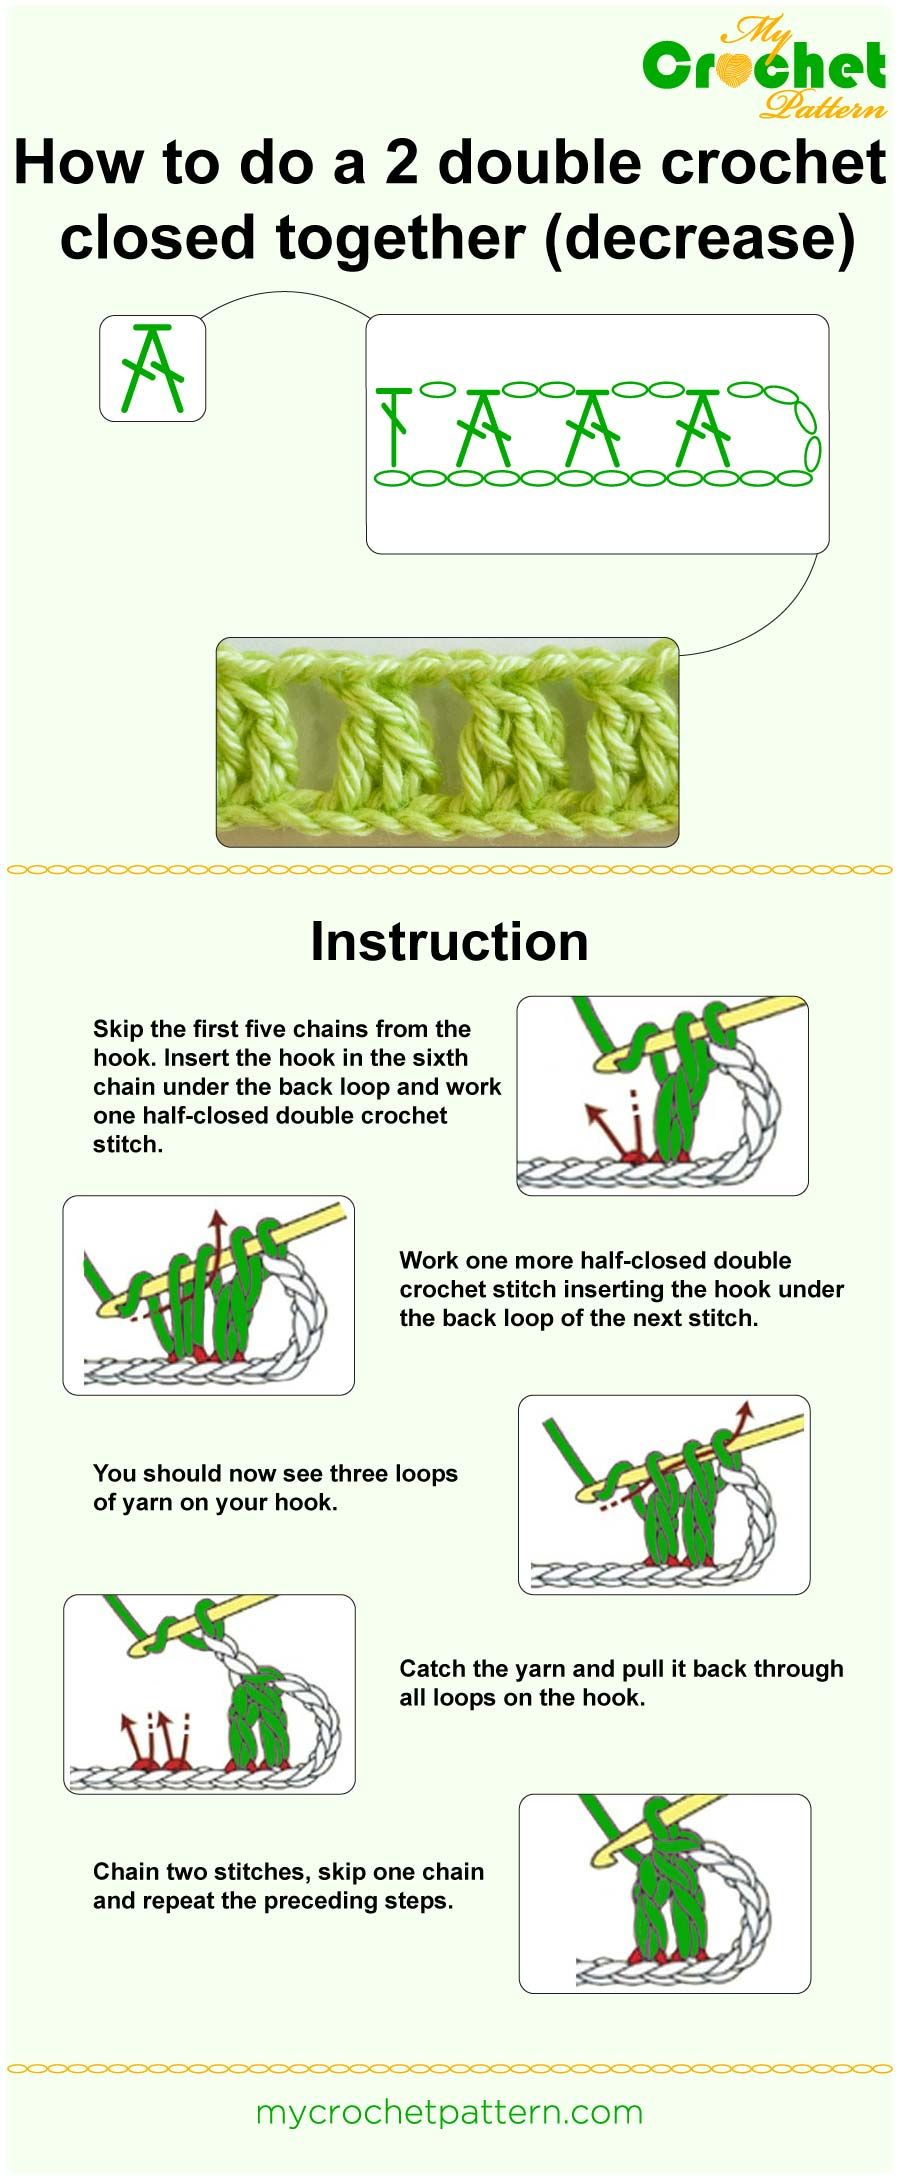 2 Double Crochet Closed Together Tutorial Rajutan Pinterest Half Diagram And On How To Do A Dc Infographic